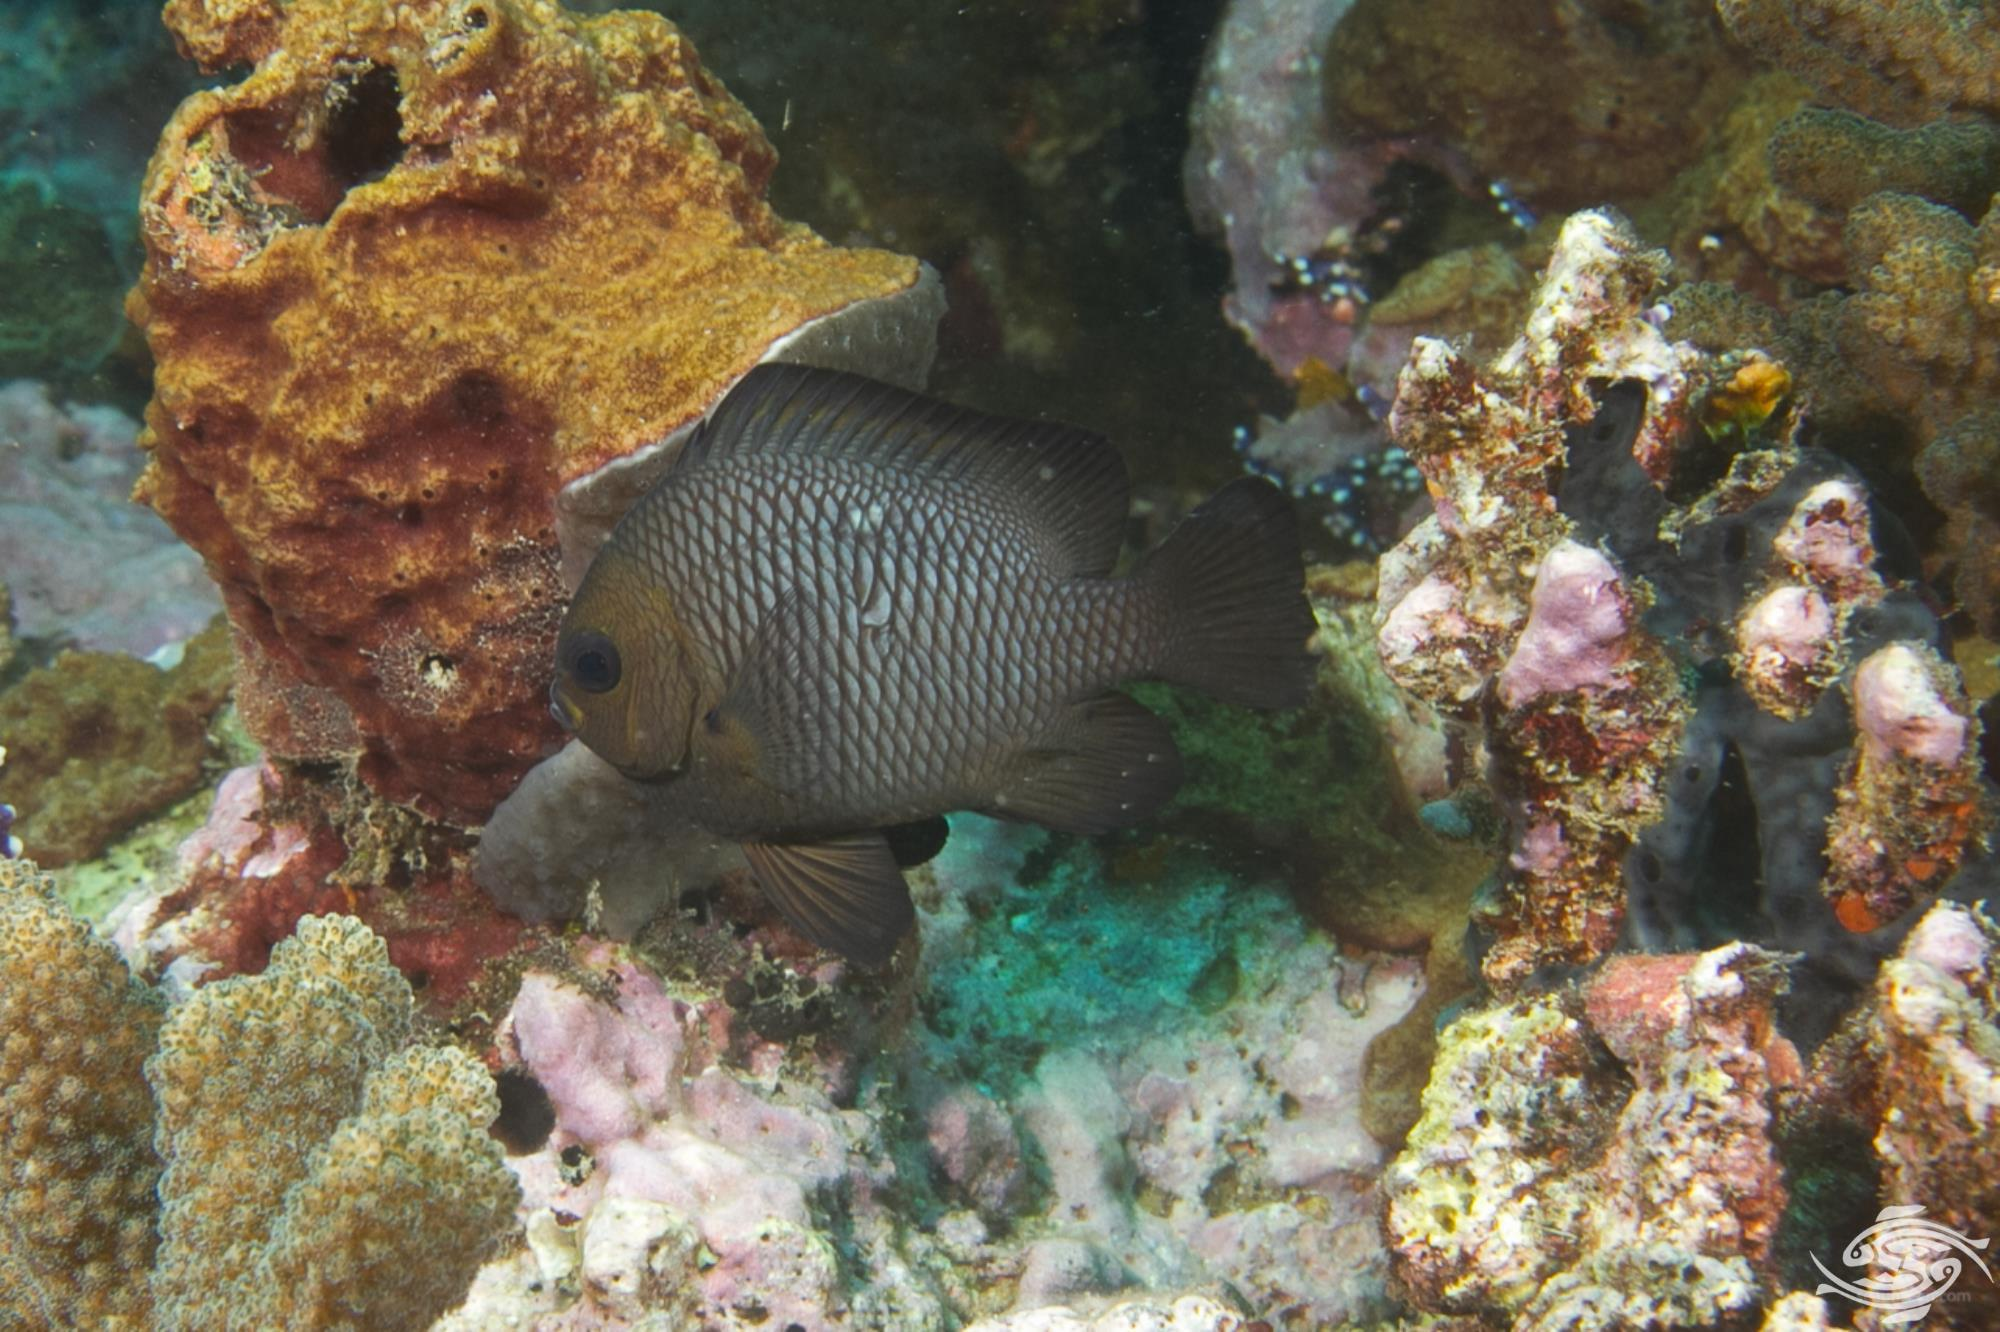 Domino Damselfish,, Dascyllus trimaculatus, also known as the Three Spot Dascyllus